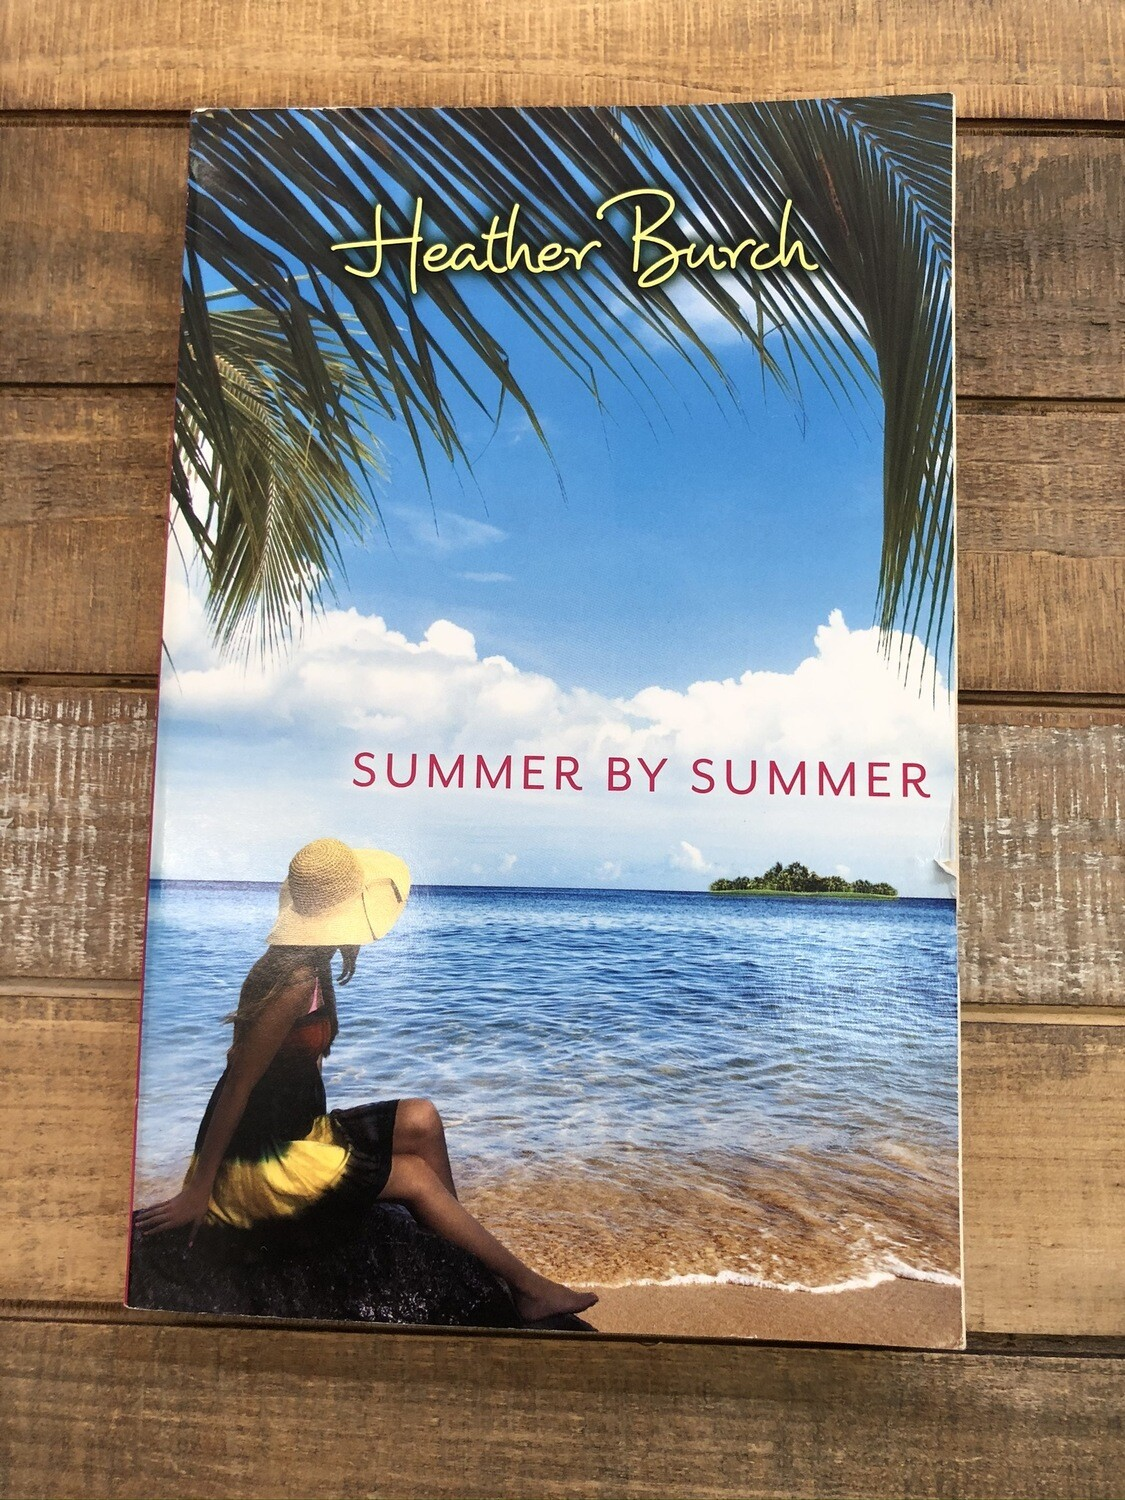 Summer by Summer -Heather Burch